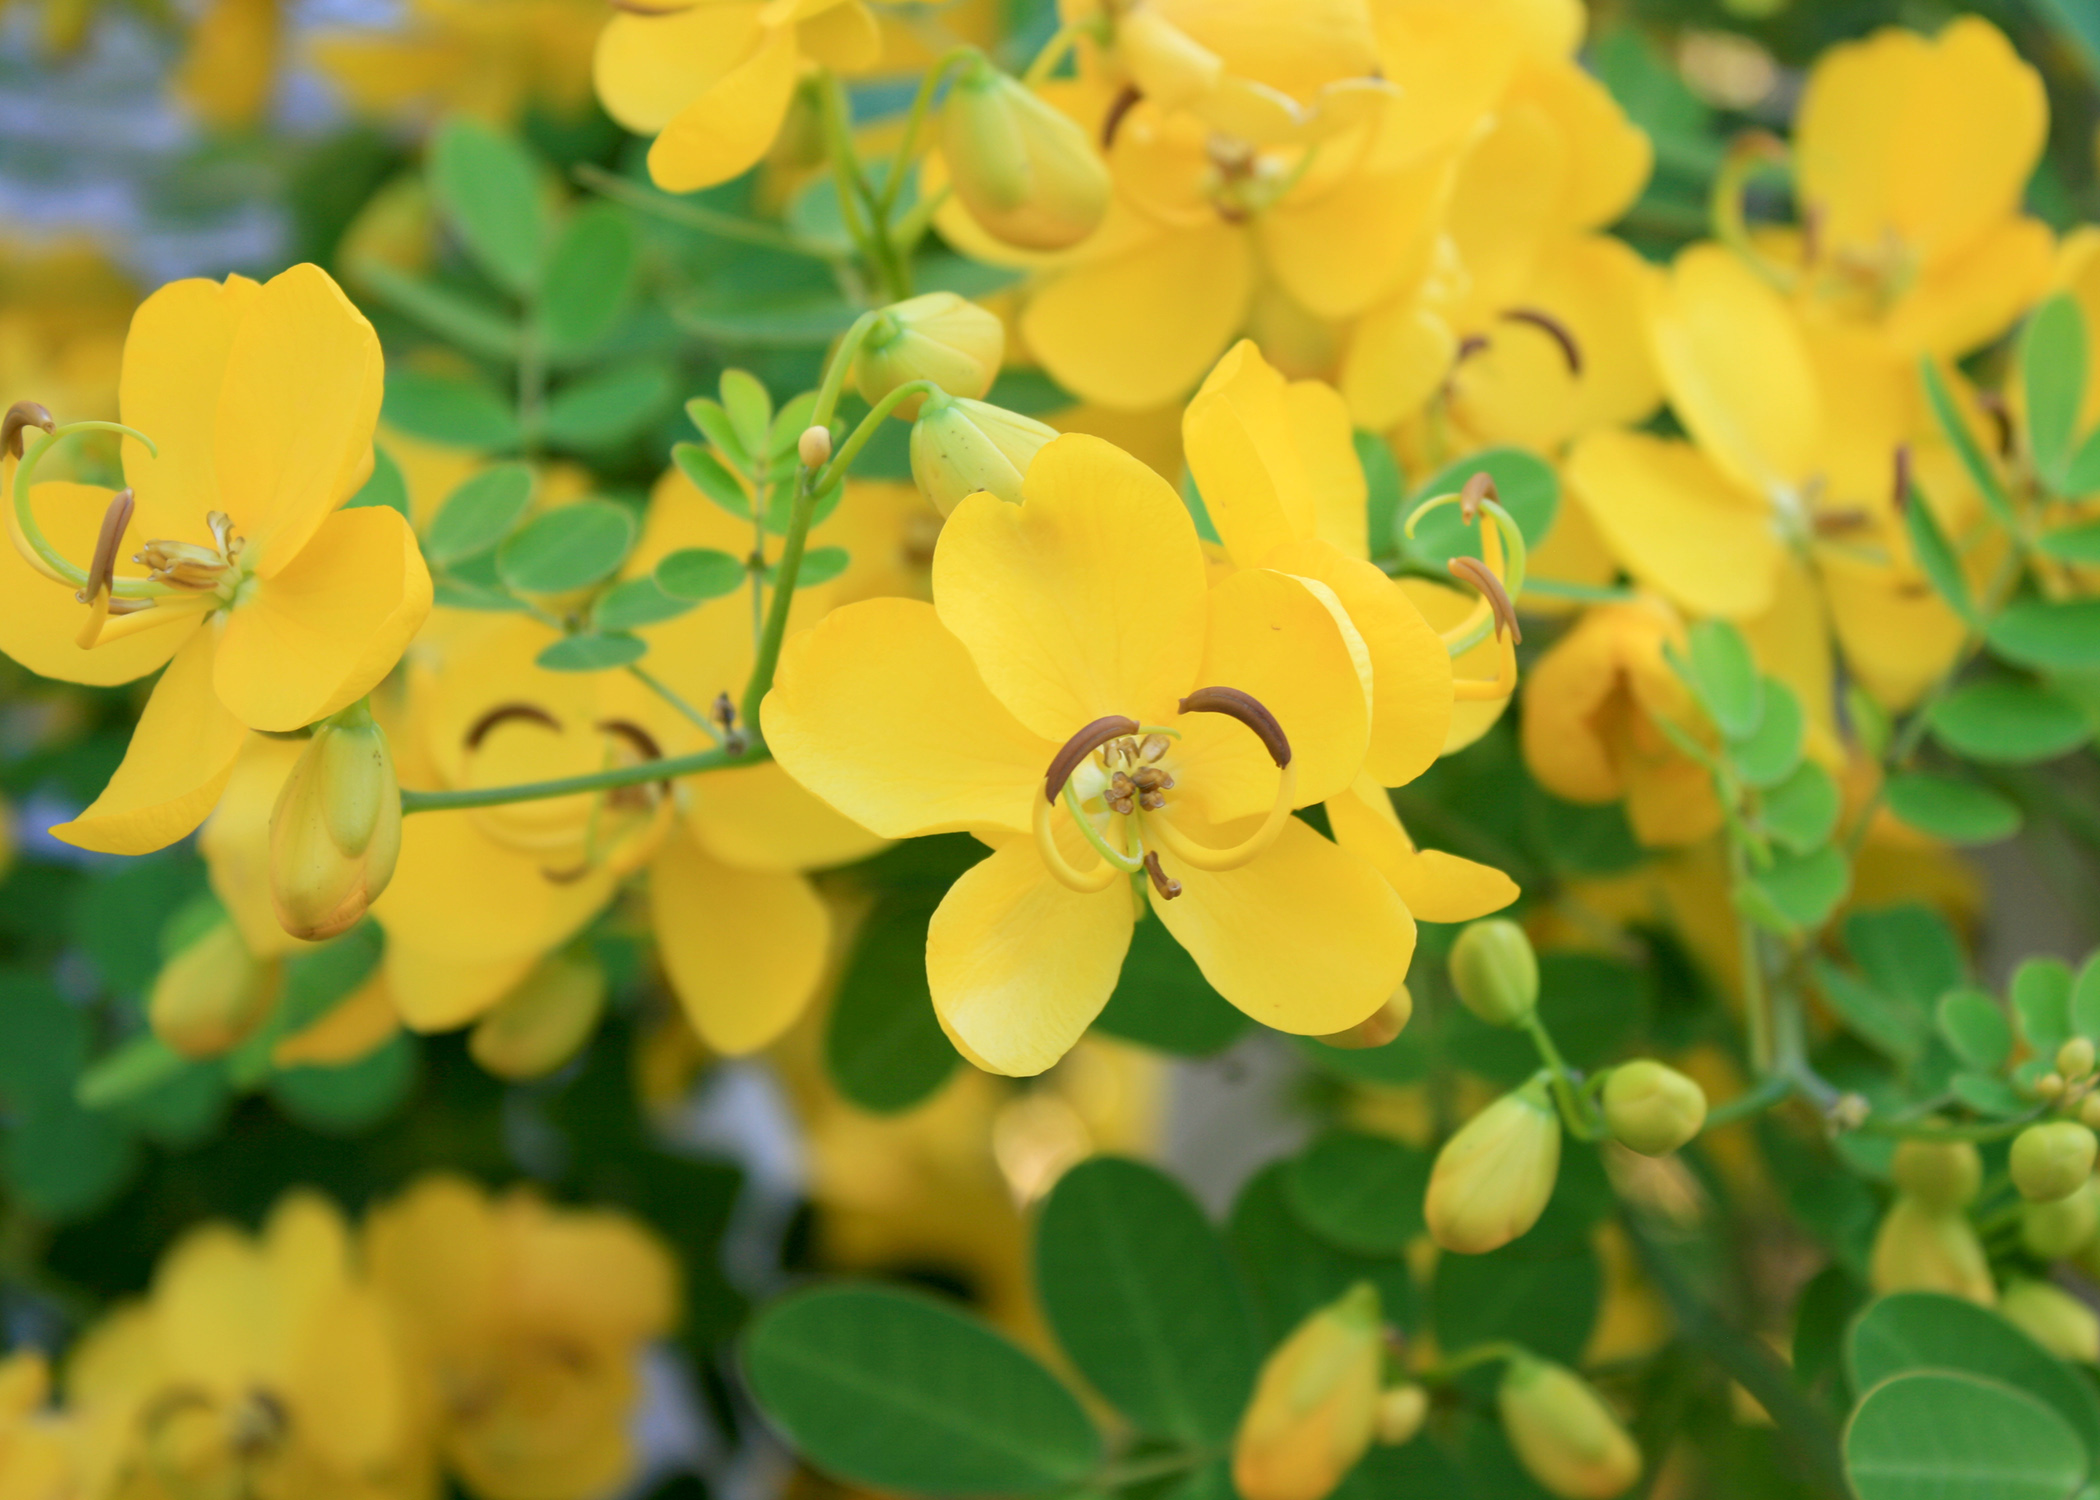 Winter cassia brings profusion of blooms mississippi state each spike like cluster of winter cassias golden yellow flowers has up to 12 individual mightylinksfo